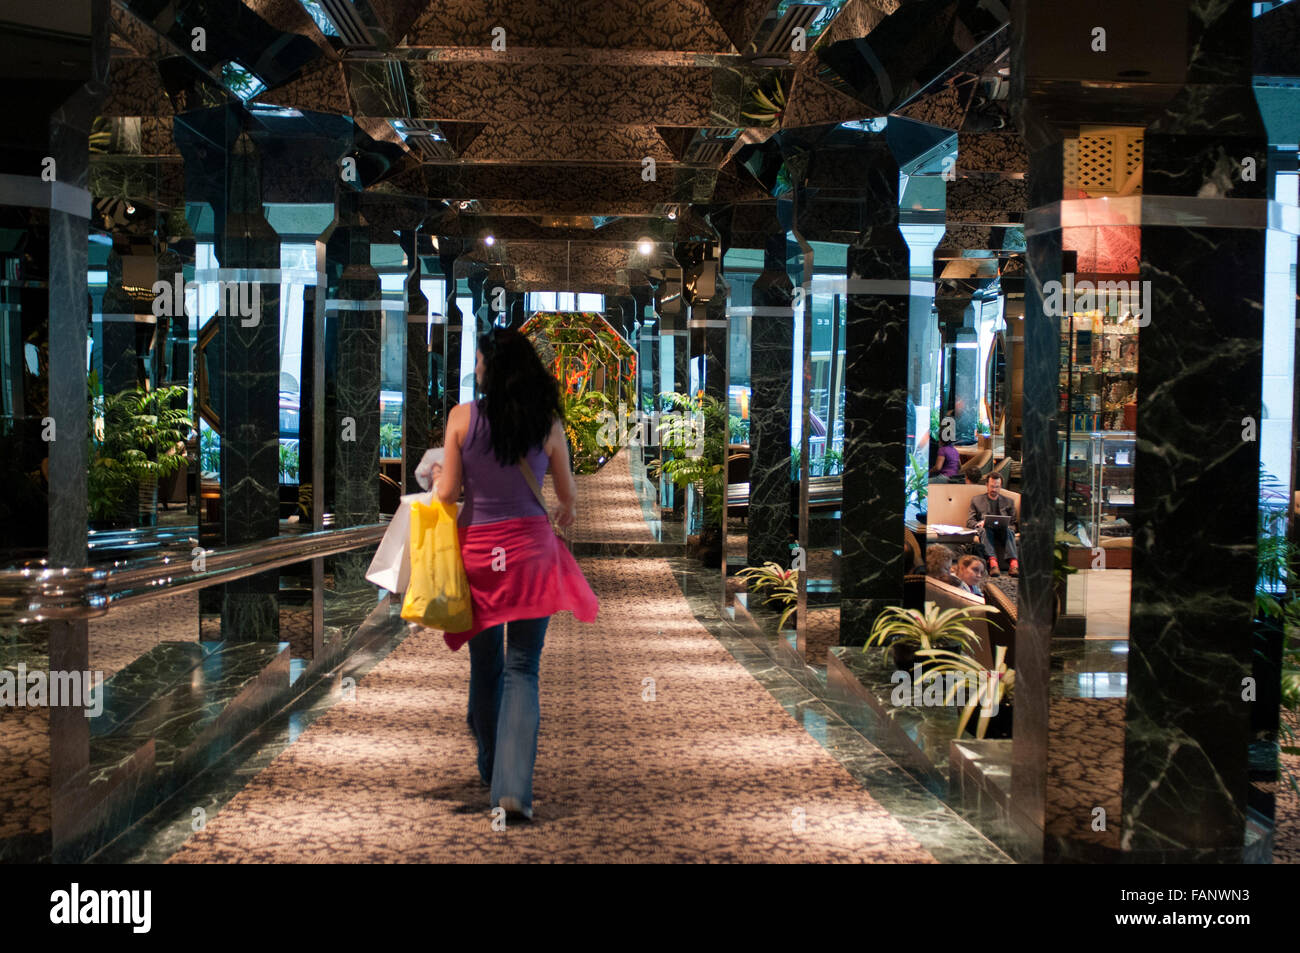 One Un New York Millennium Hotel Entrance And Galleries One Un New Stock Photo Alamy